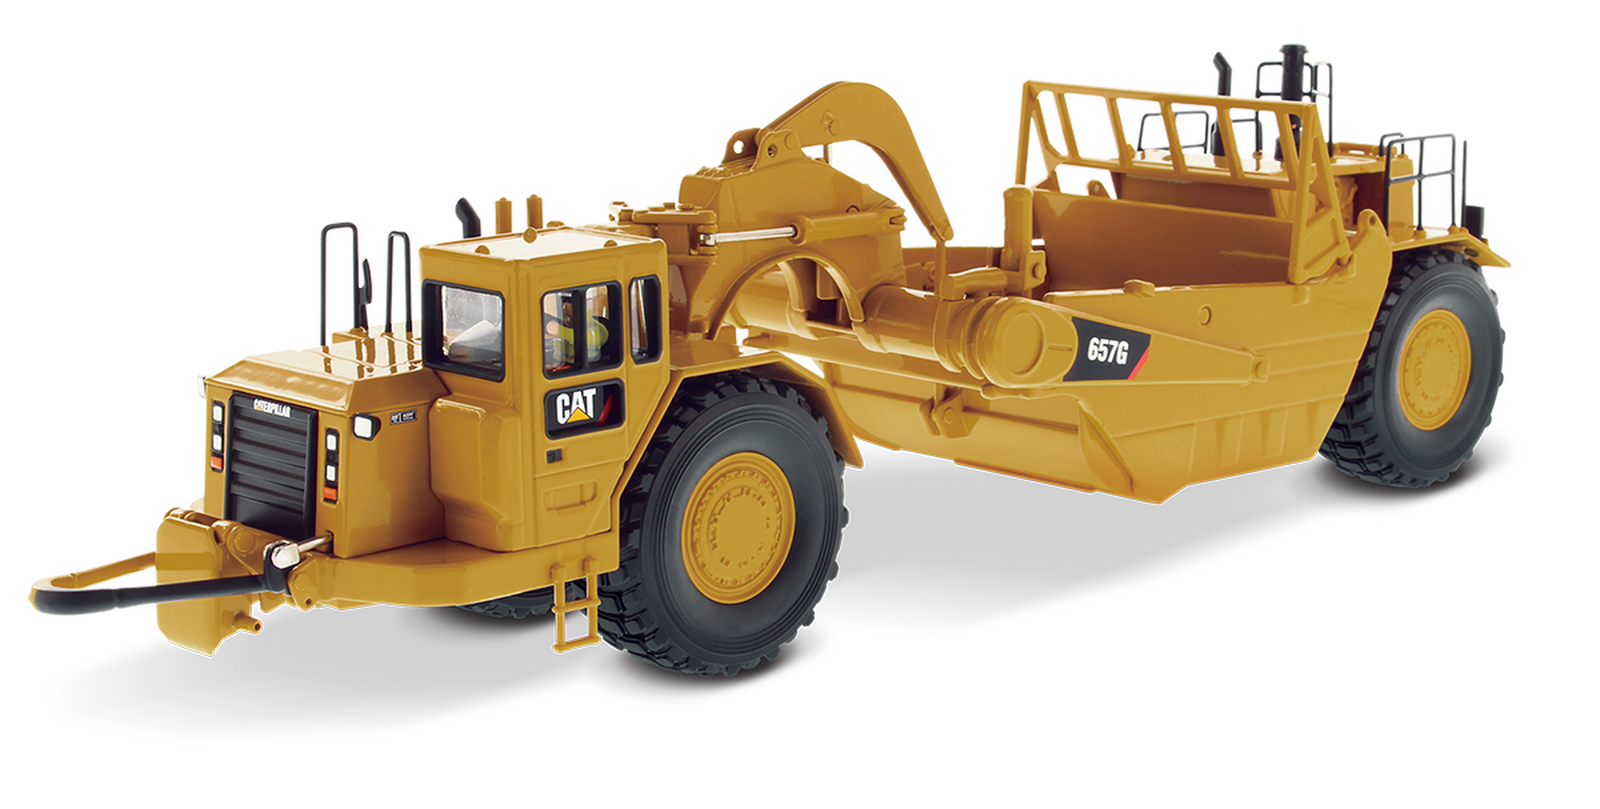 1 50 DM Caterpillar Cat 657G Wheel Tractor Scraper Diecast Model  85175C